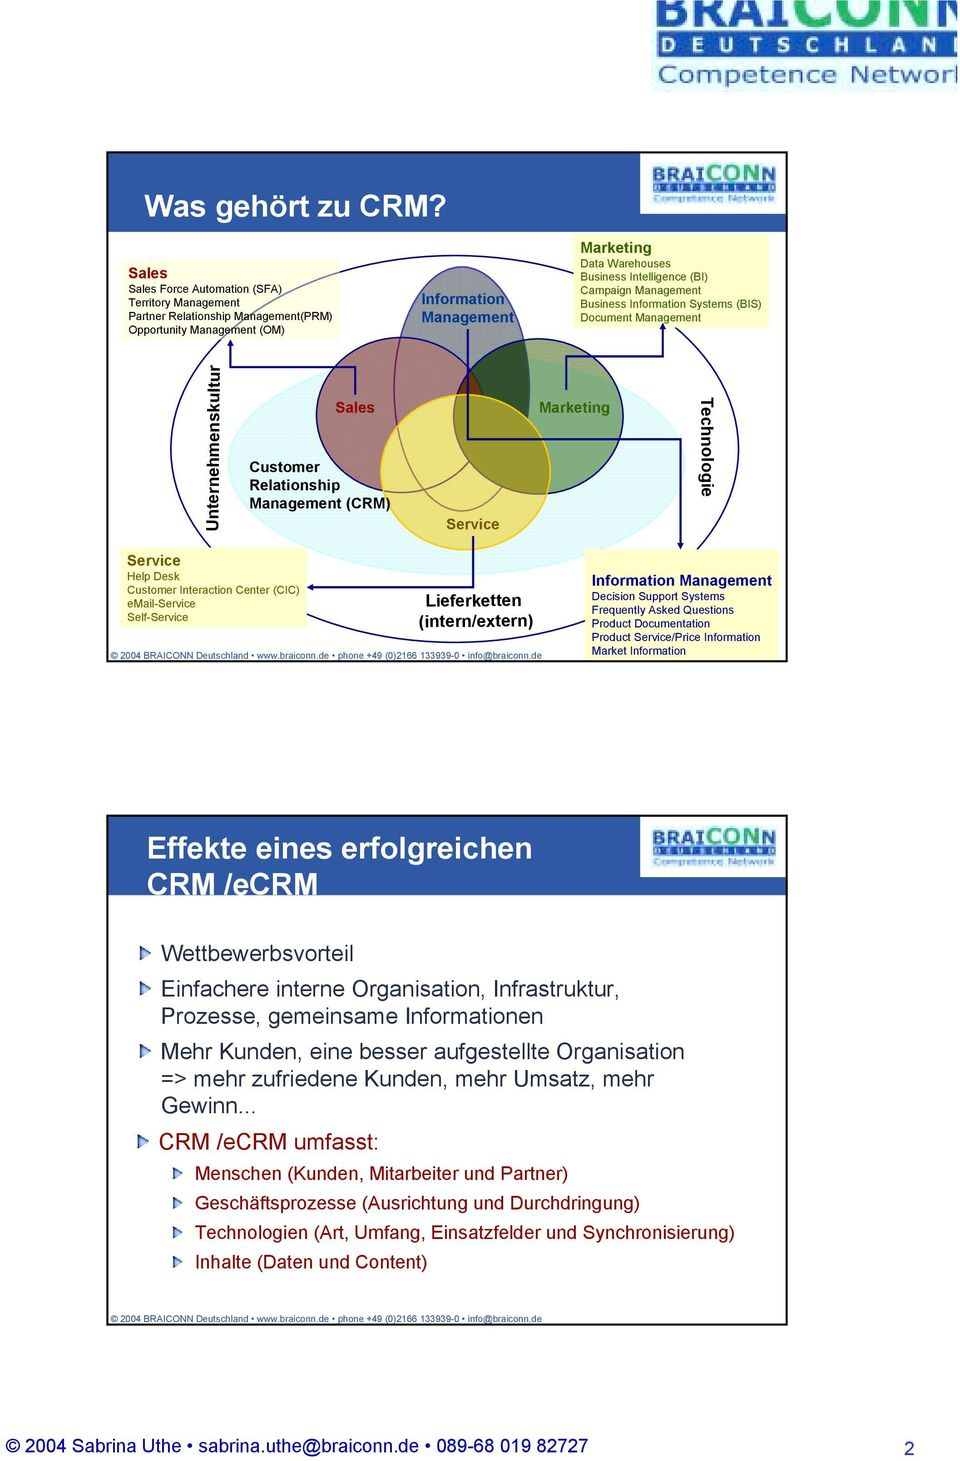 Campaign Management Business Information Systems (BIS) Document Management Unternehmenskultur Sales Customer Relationship Management (CRM) Service Marketing Service Help Desk Customer Interaction